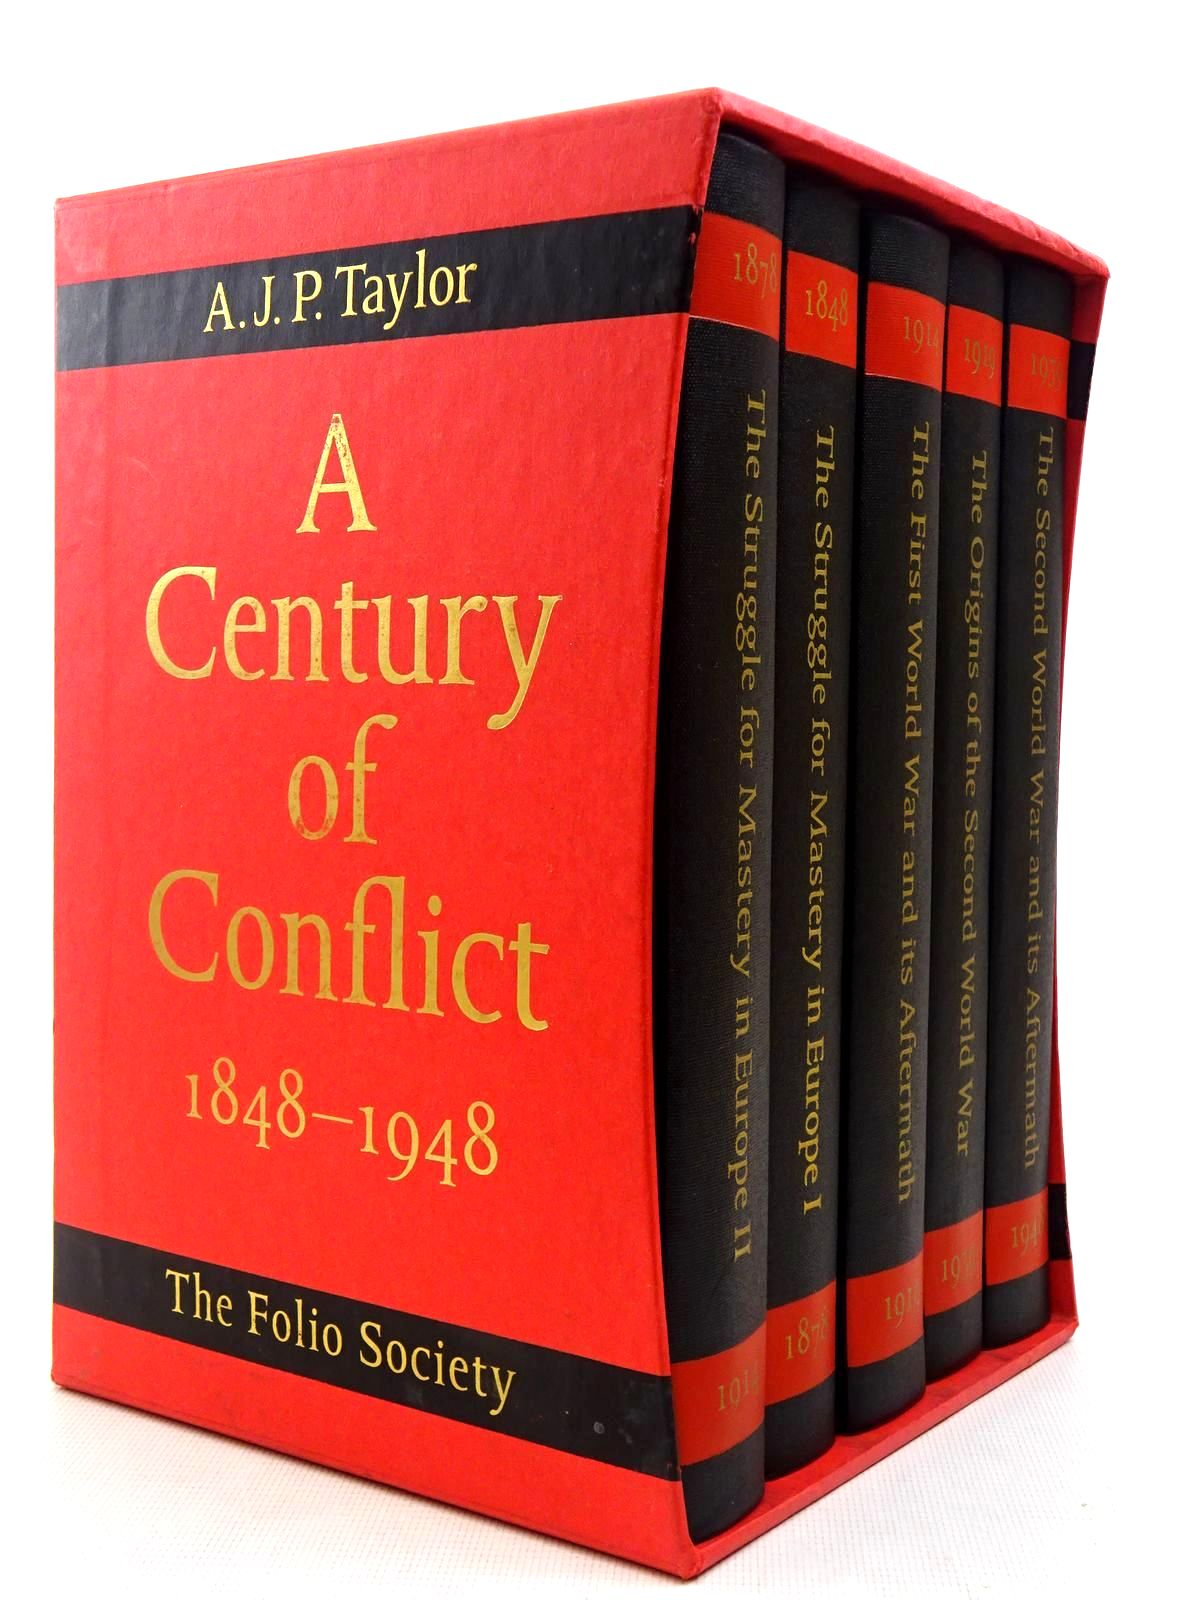 Photo of A CENTURY OF CONFLICT 1848-1948 (5 VOLUMES) written by Taylor, A.J.P. published by Folio Society (STOCK CODE: 2128959)  for sale by Stella & Rose's Books